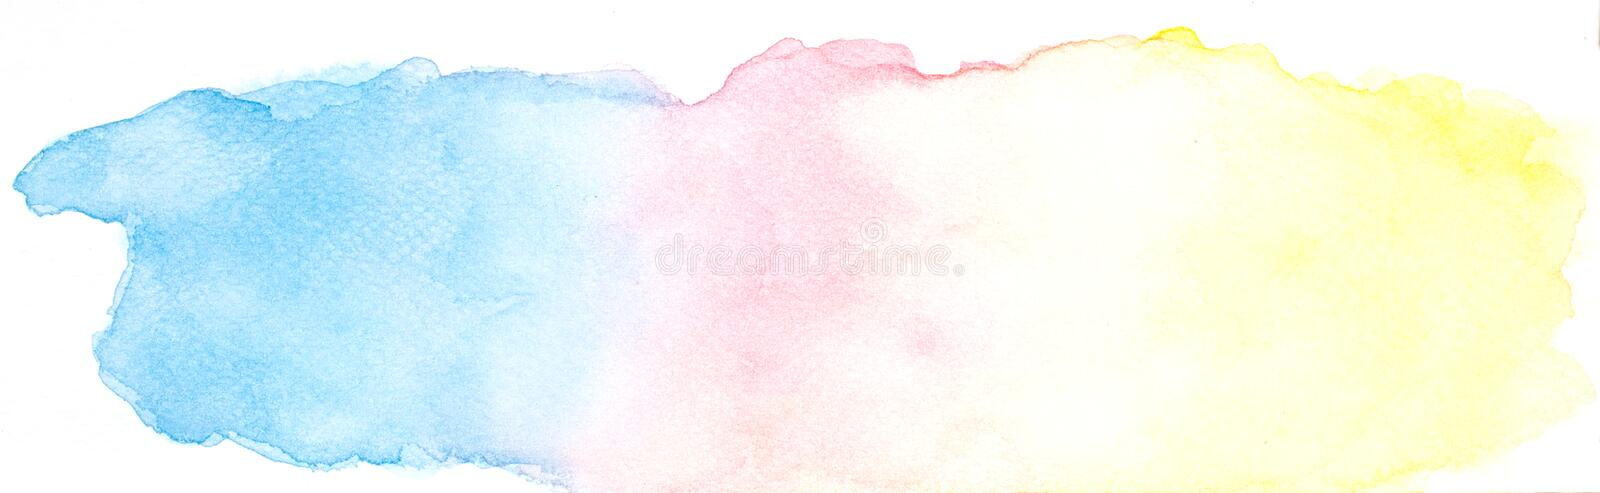 Abstract watercolor background, Colorful watercolor hand paint design banners stock illustration